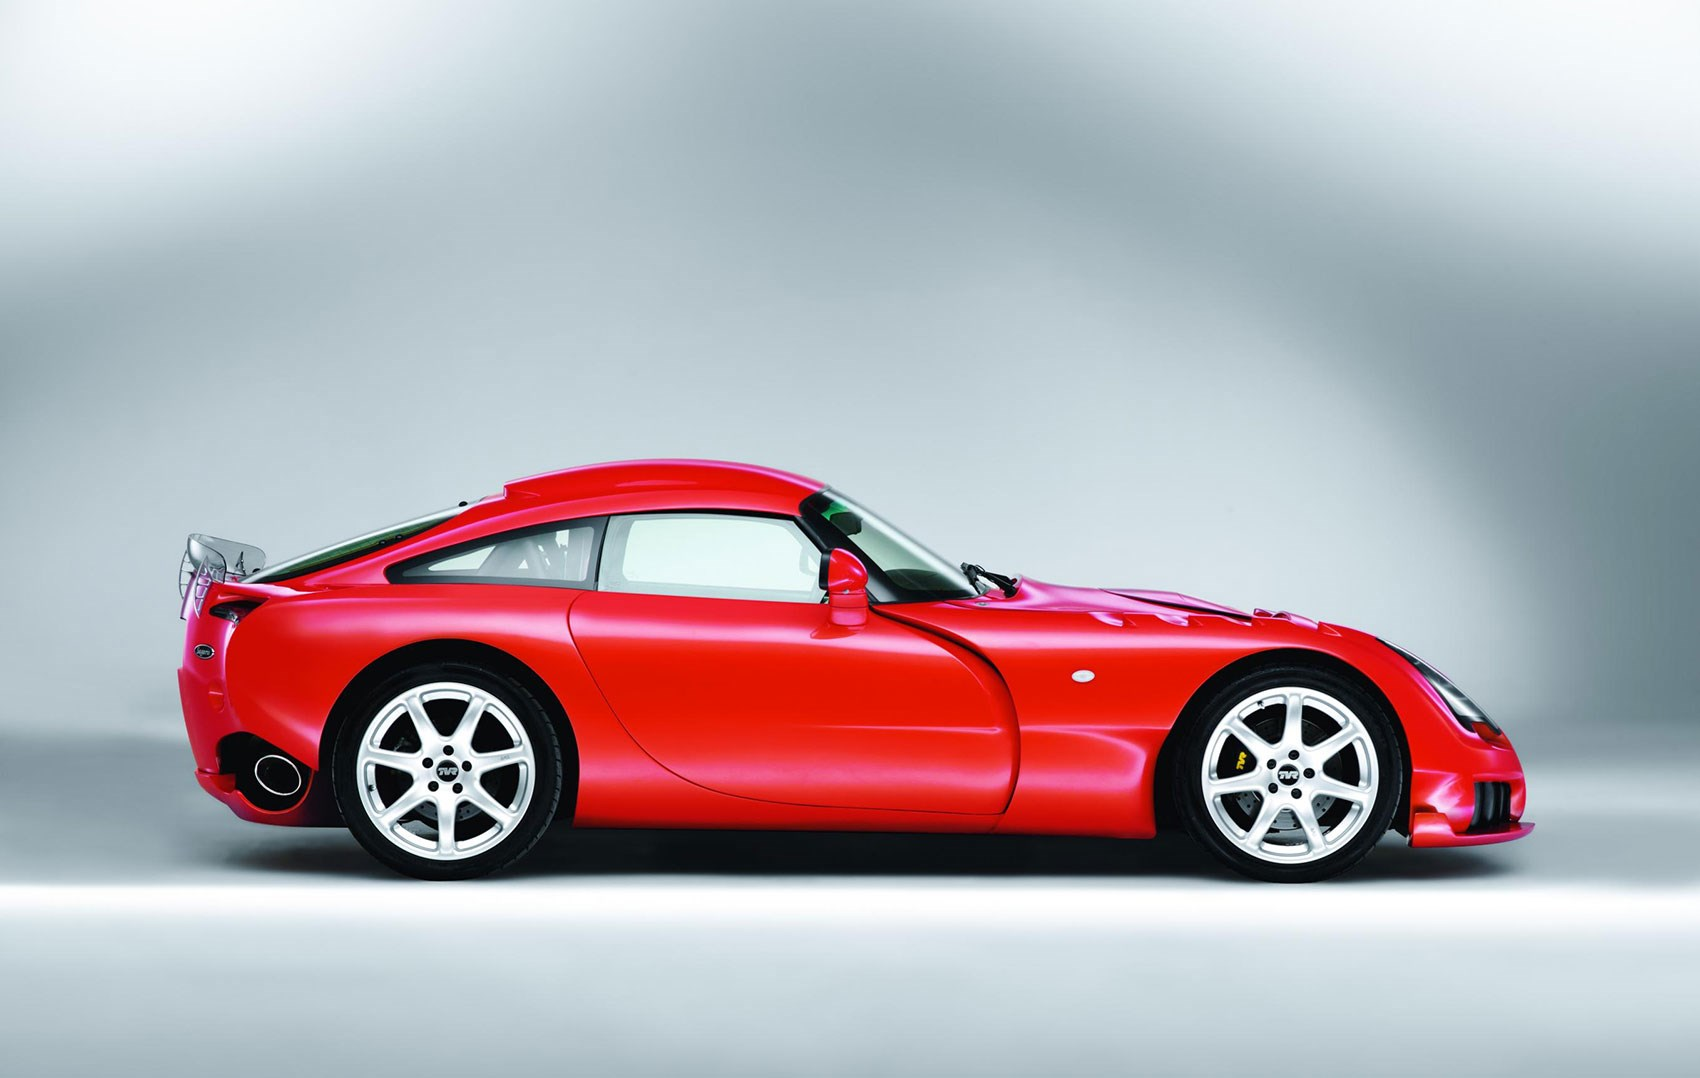 Tvr #17